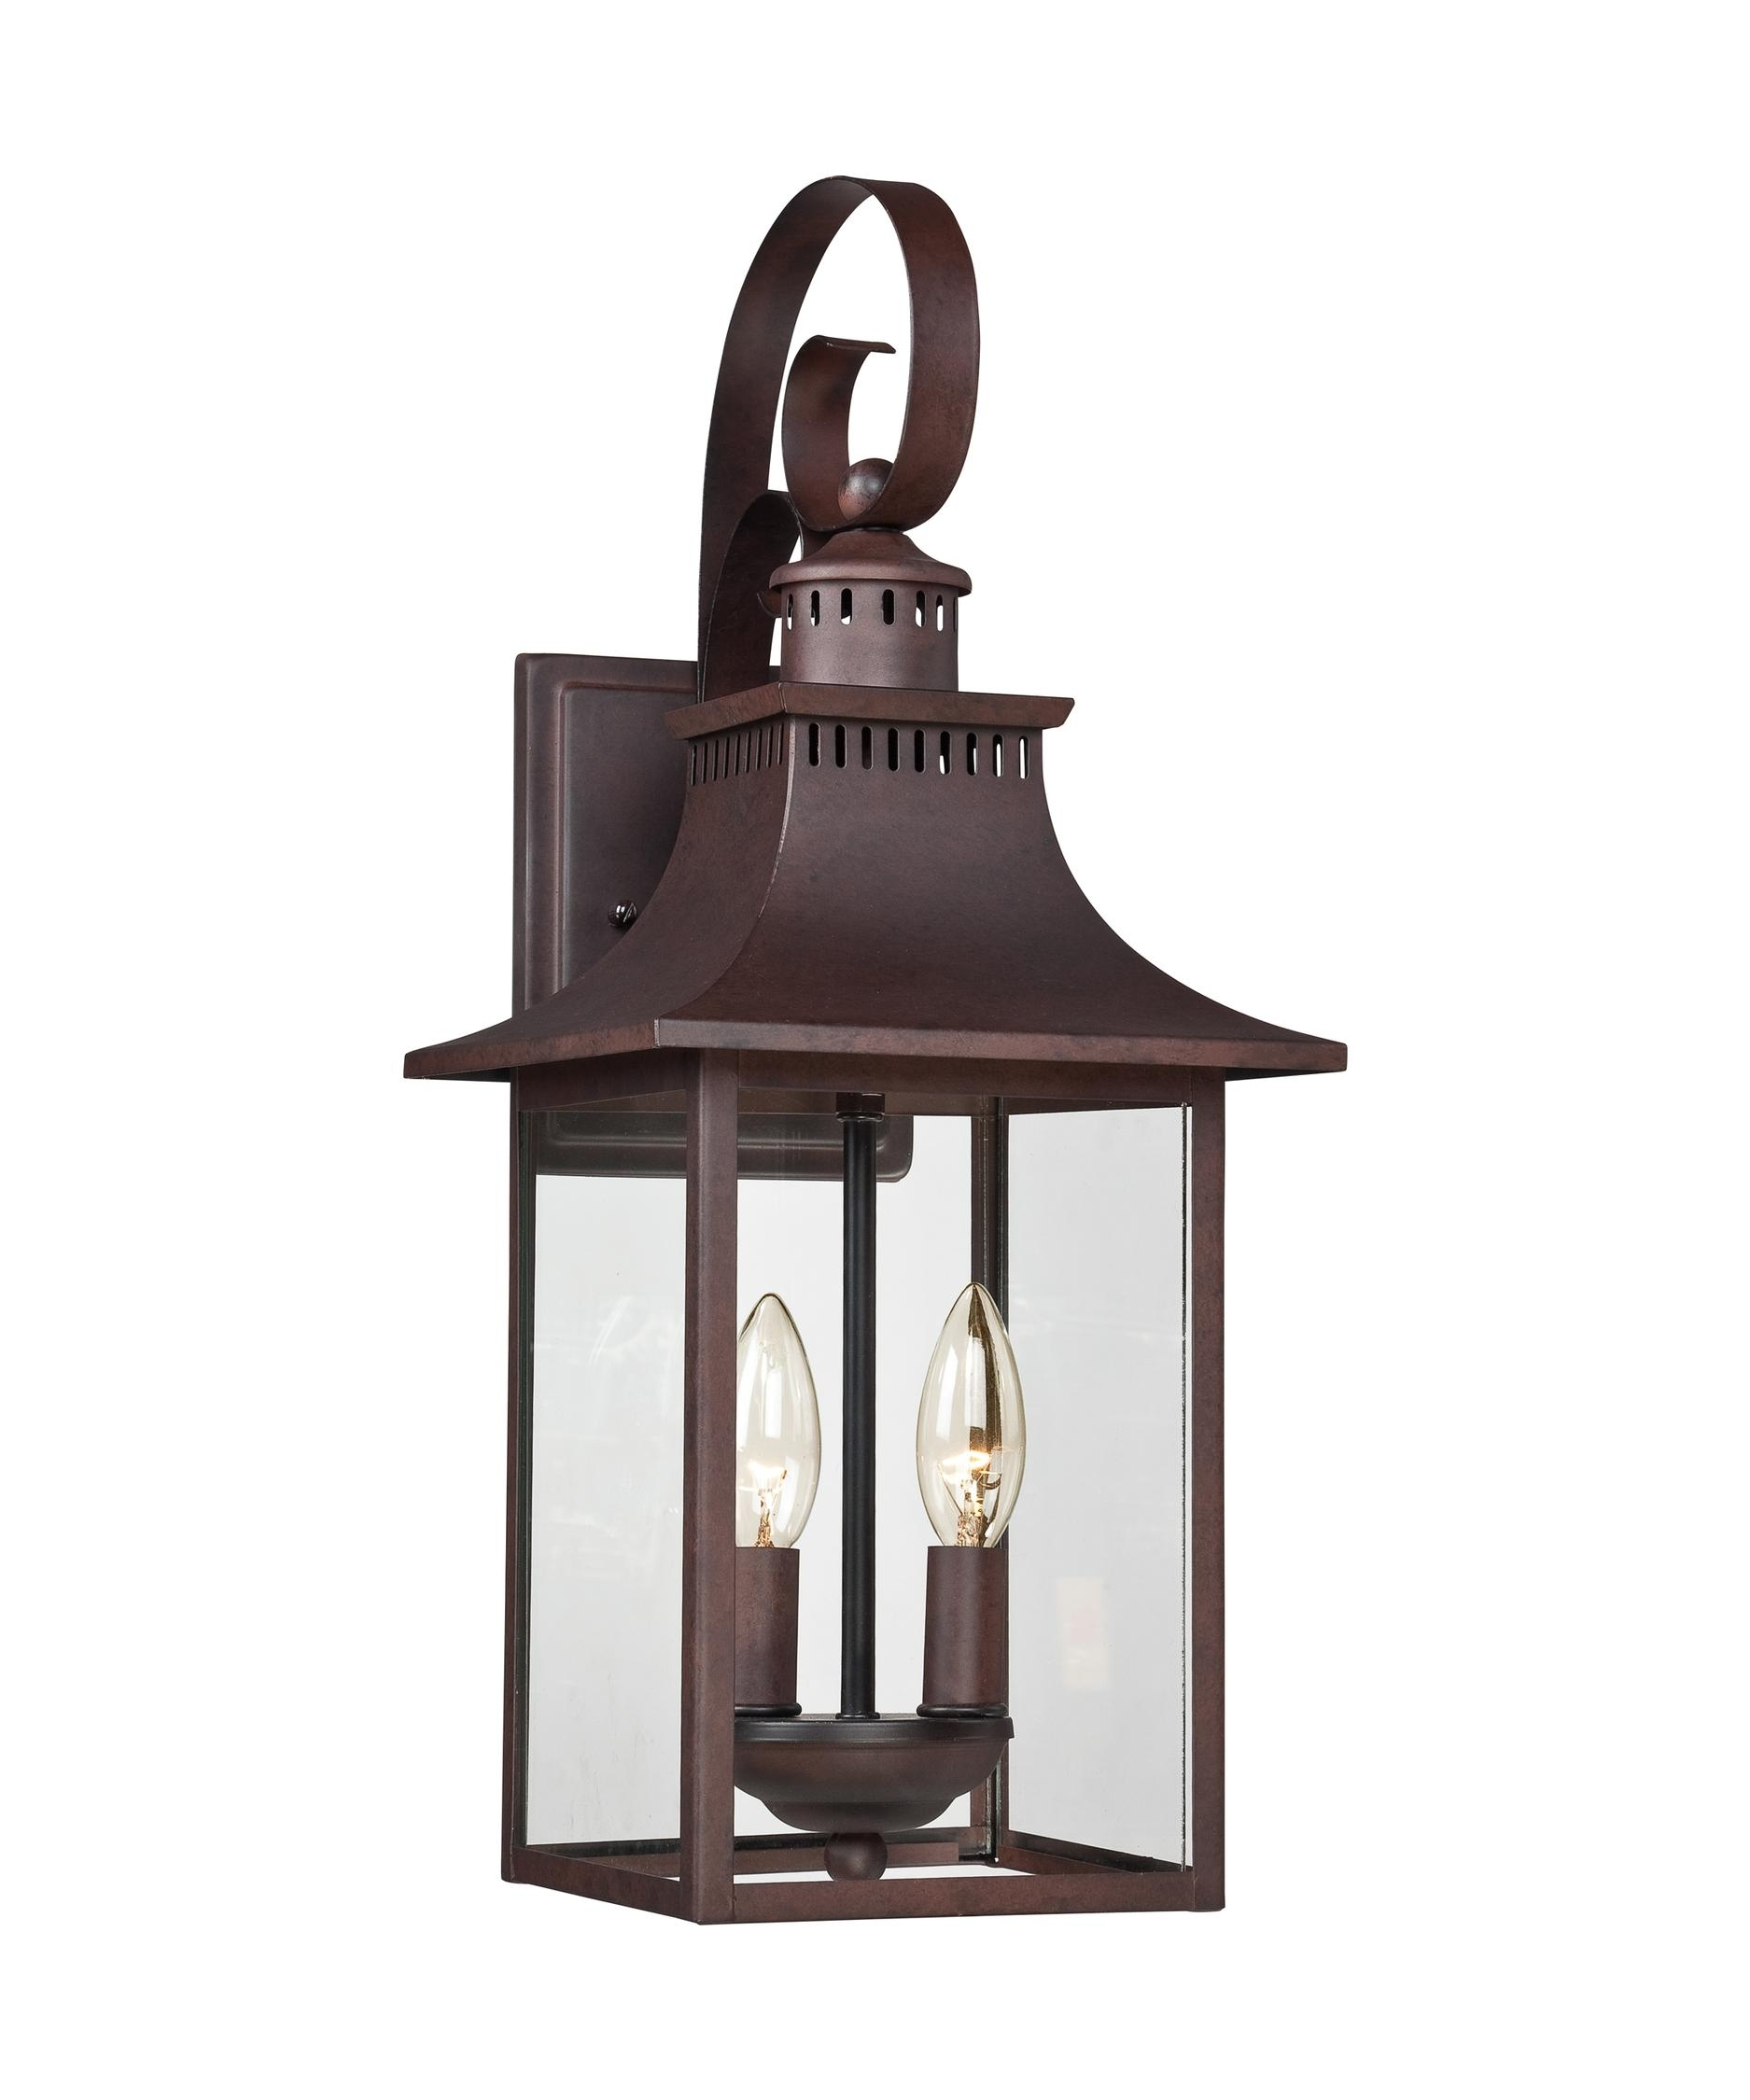 Most Popular Quoizel Ccr8408 Chancellor 8 Inch Wide 2 Light Outdoor Wall Light Pertaining To Quoizel Outdoor Wall Lighting (View 3 of 20)